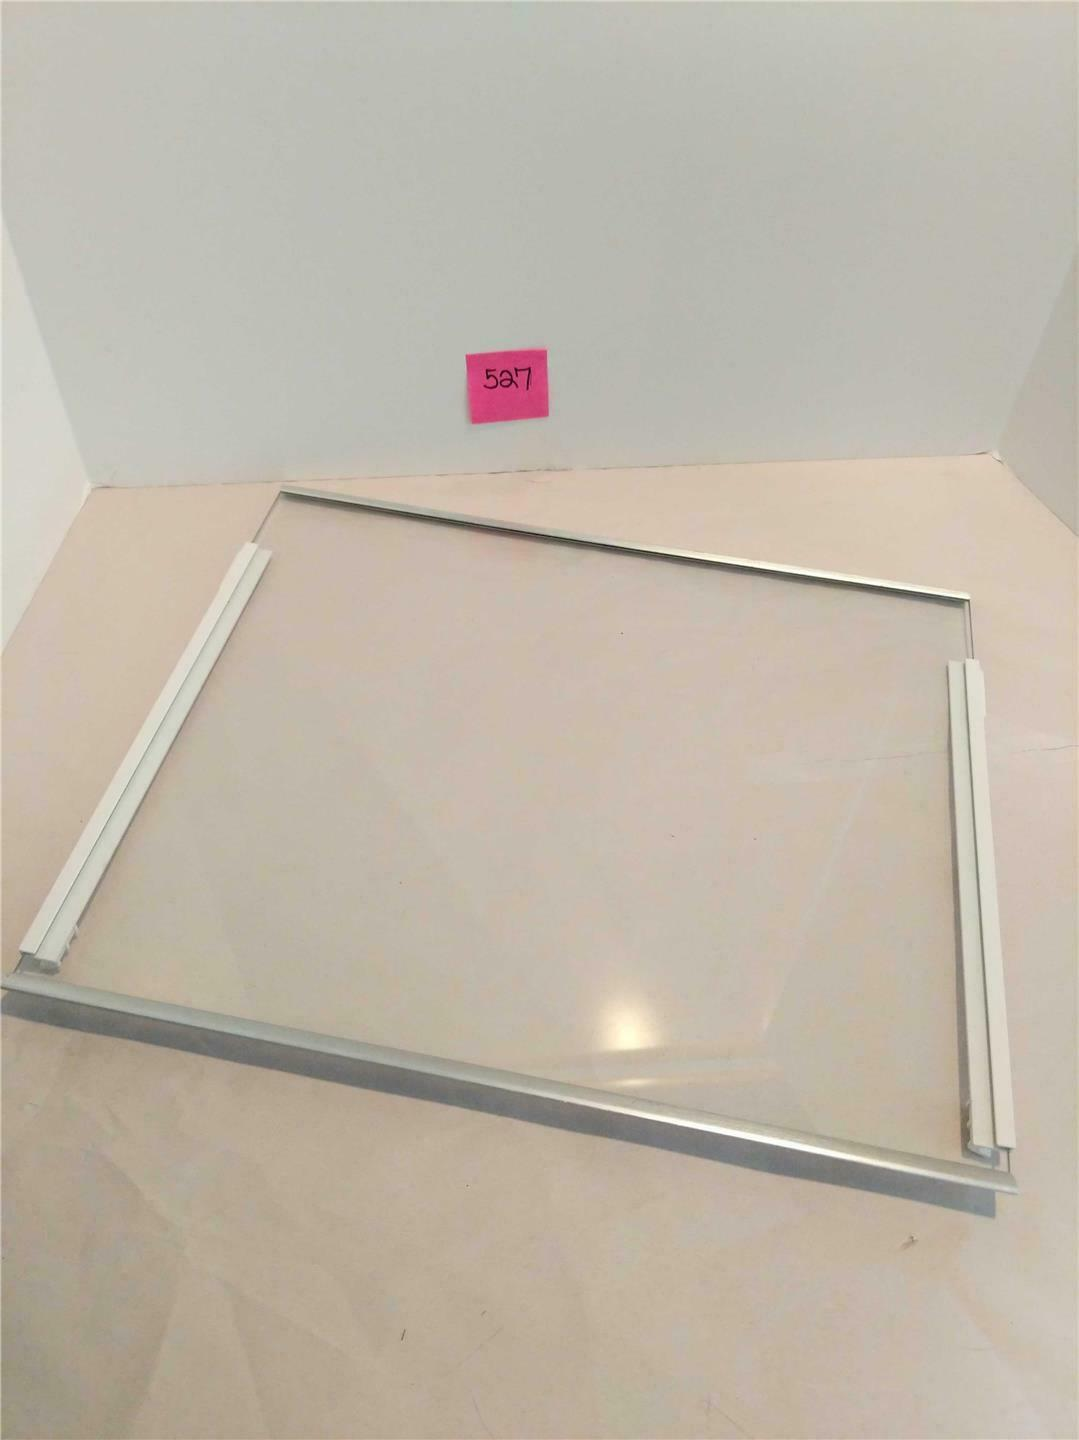 Primary image for Bosch Linea Side X Side Refrigerator FREEZERGLASS SHELF #00672961 USED OEM PART